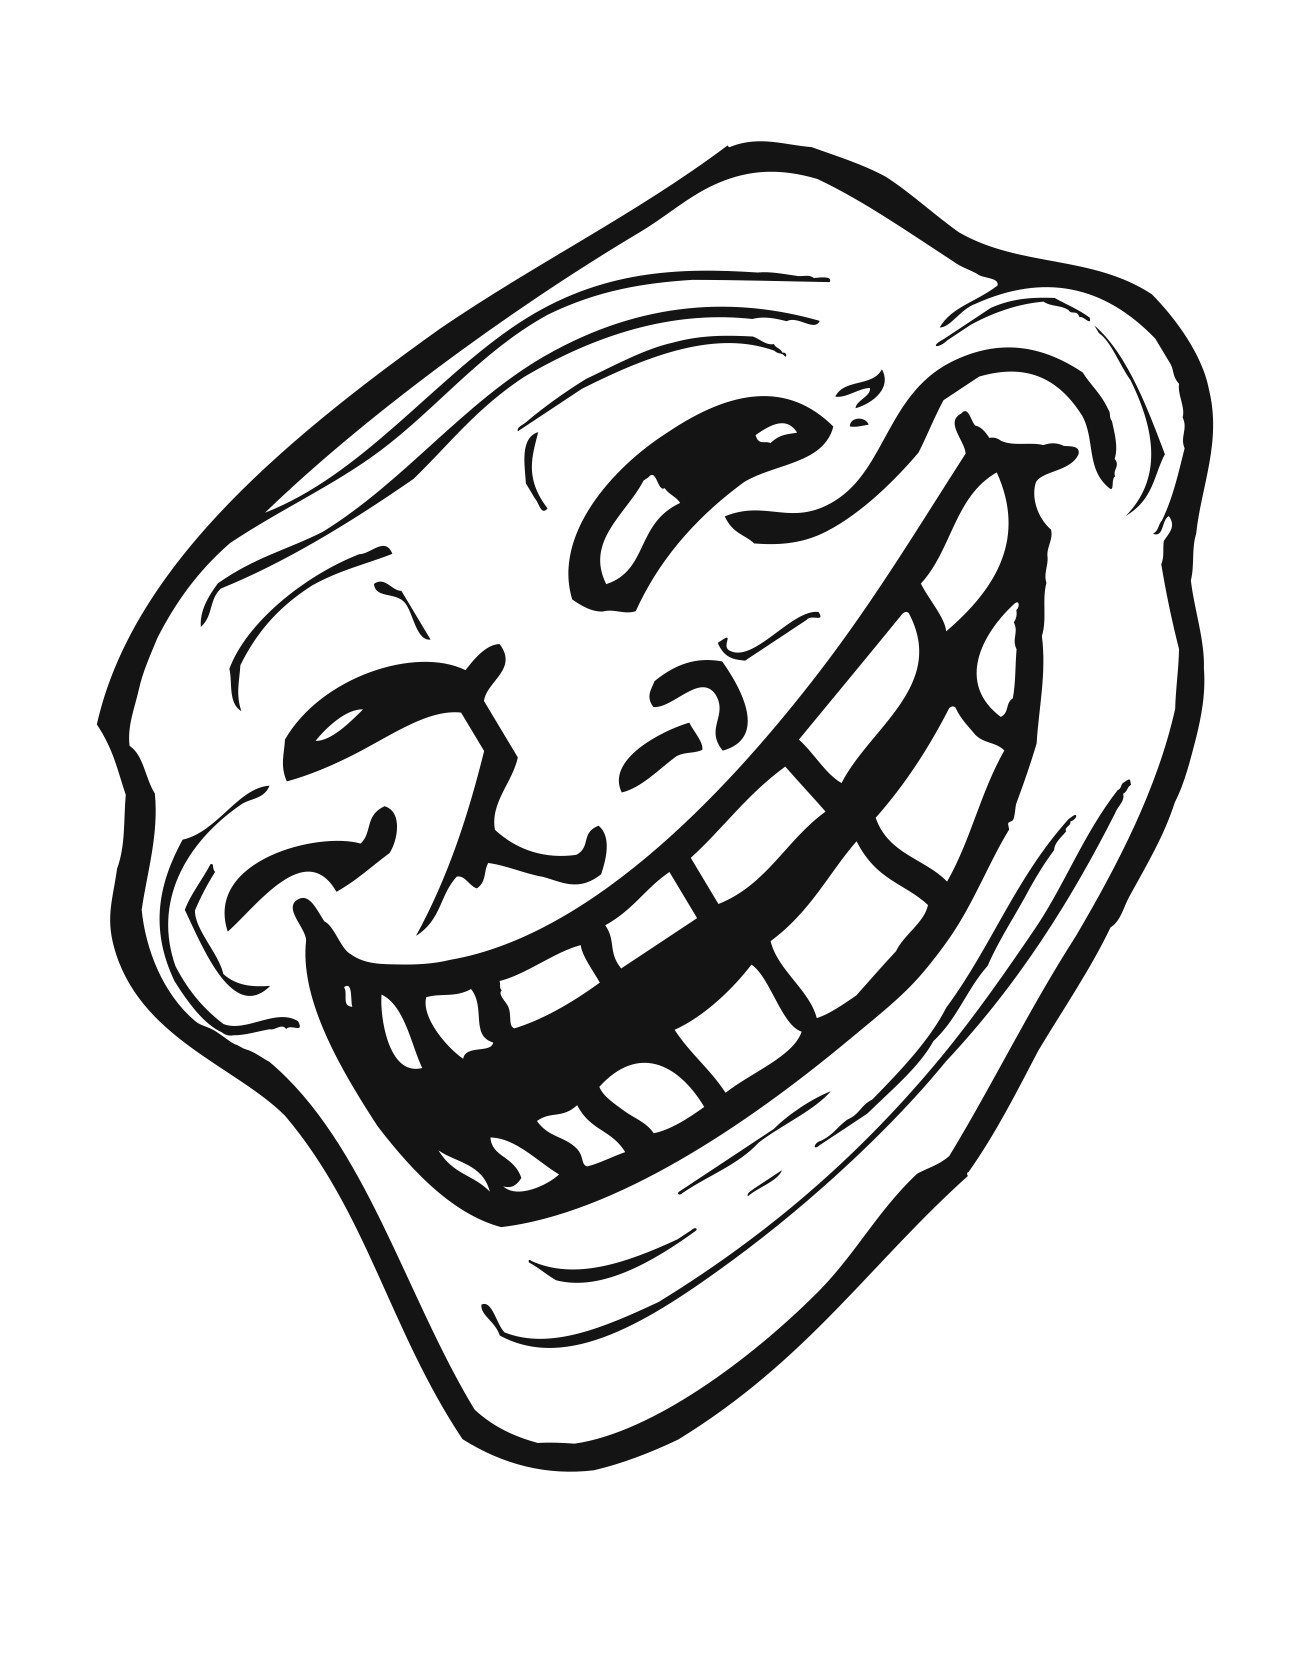 Troll Face Template Amazing ass Pic Bodybuilding forums